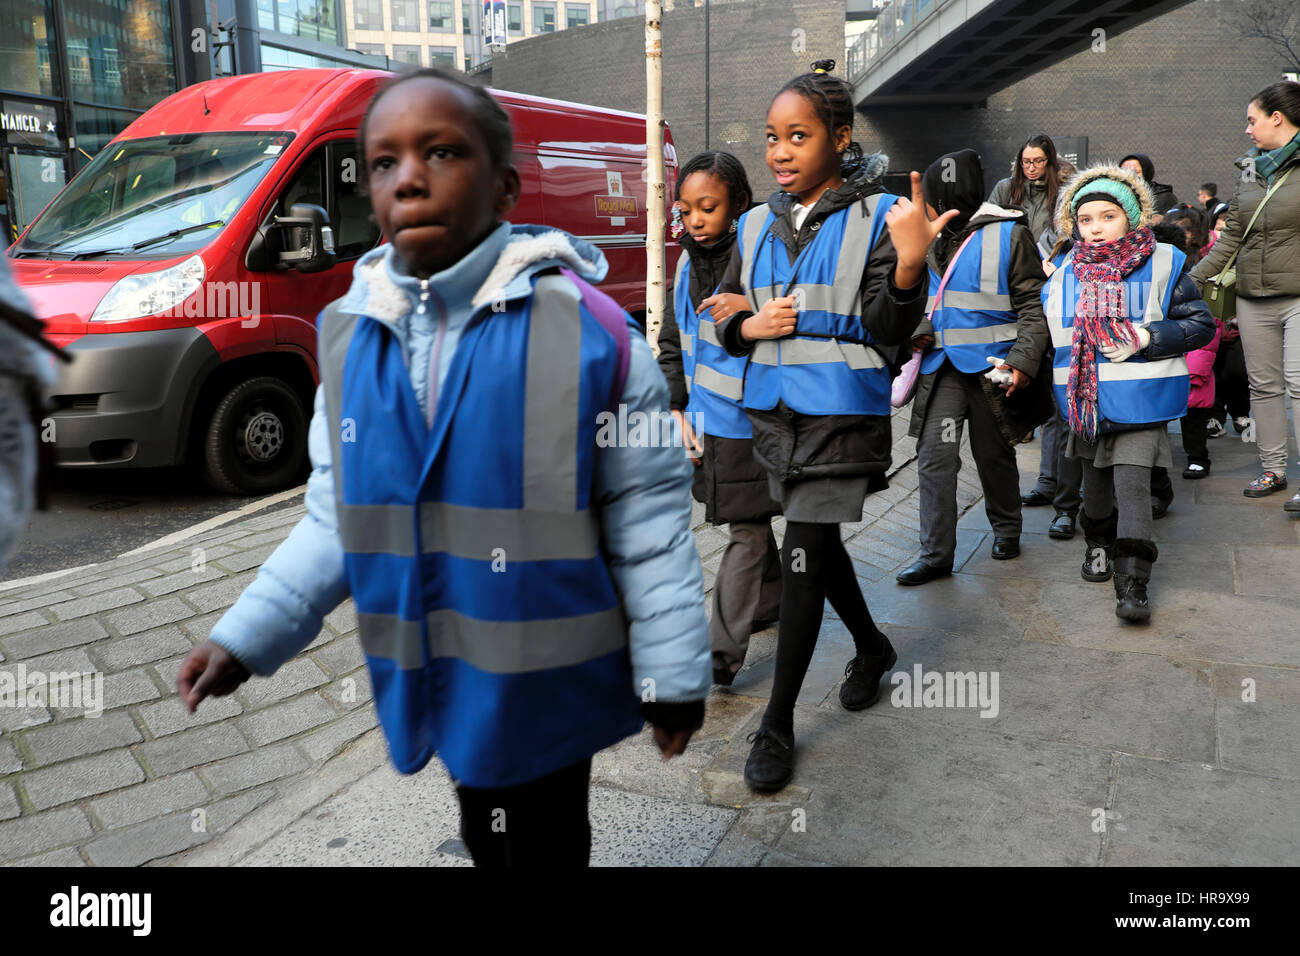 British school children group wearing blue vests walking along a street after a visit to the Museum of London England - Stock Image